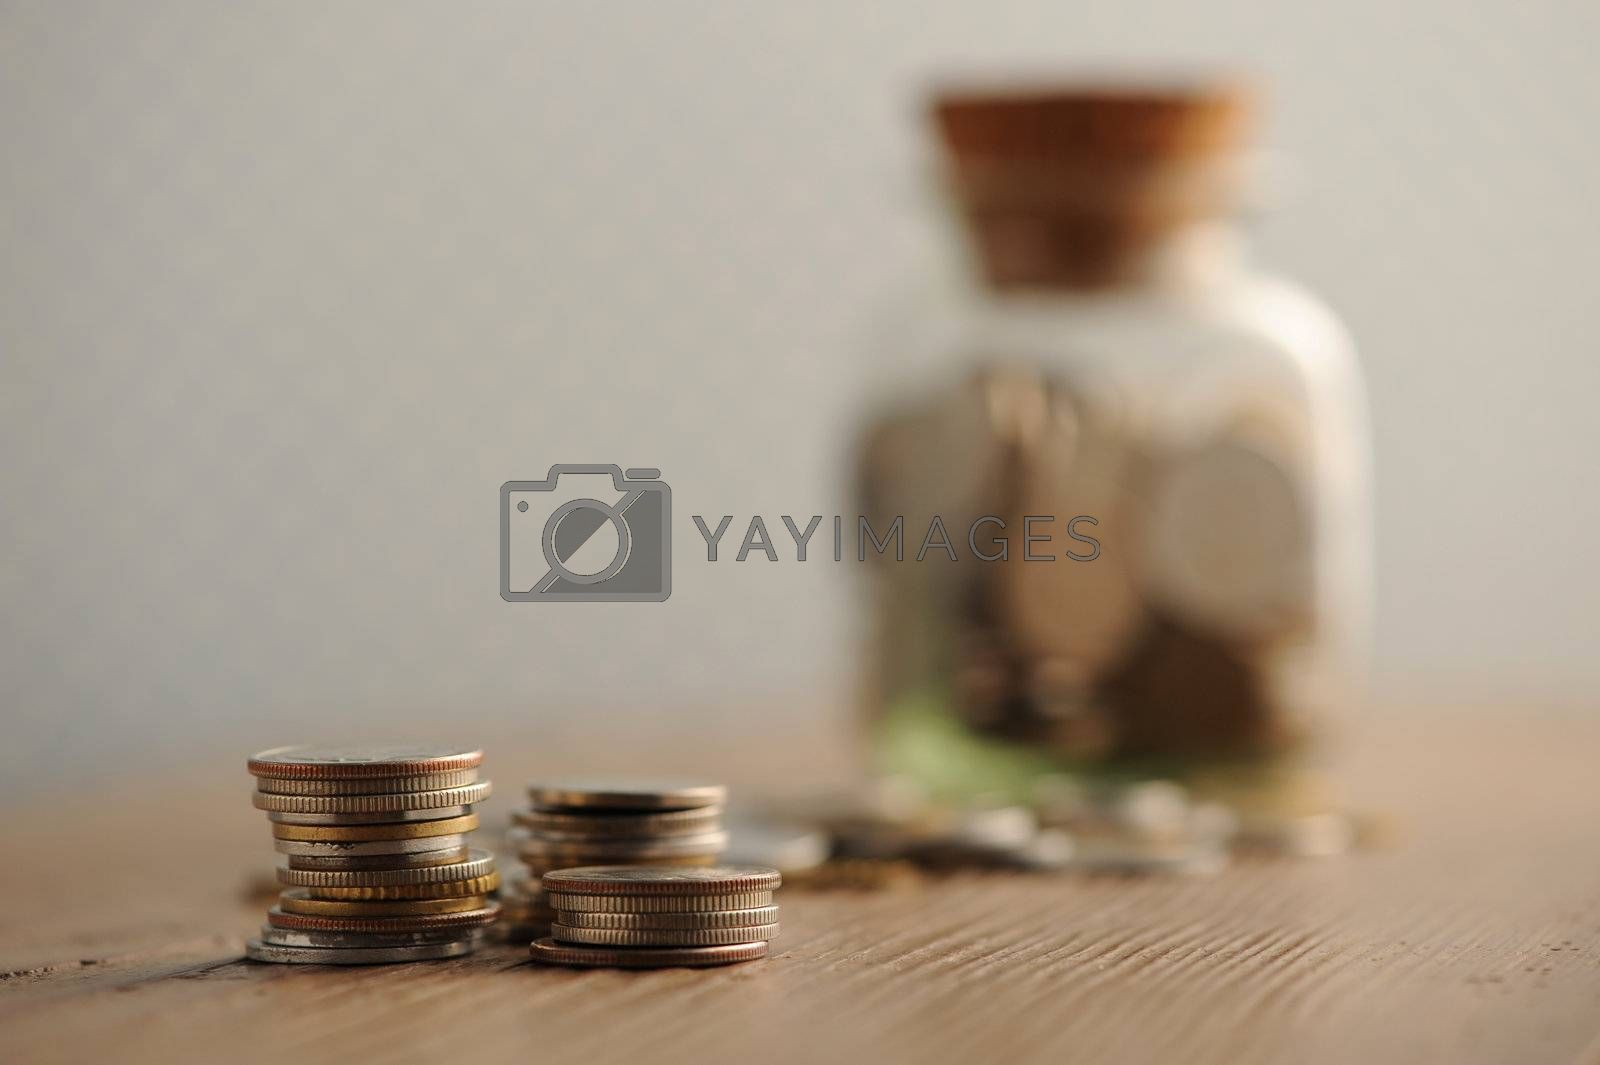 old coins on the wooden table, shallow dof